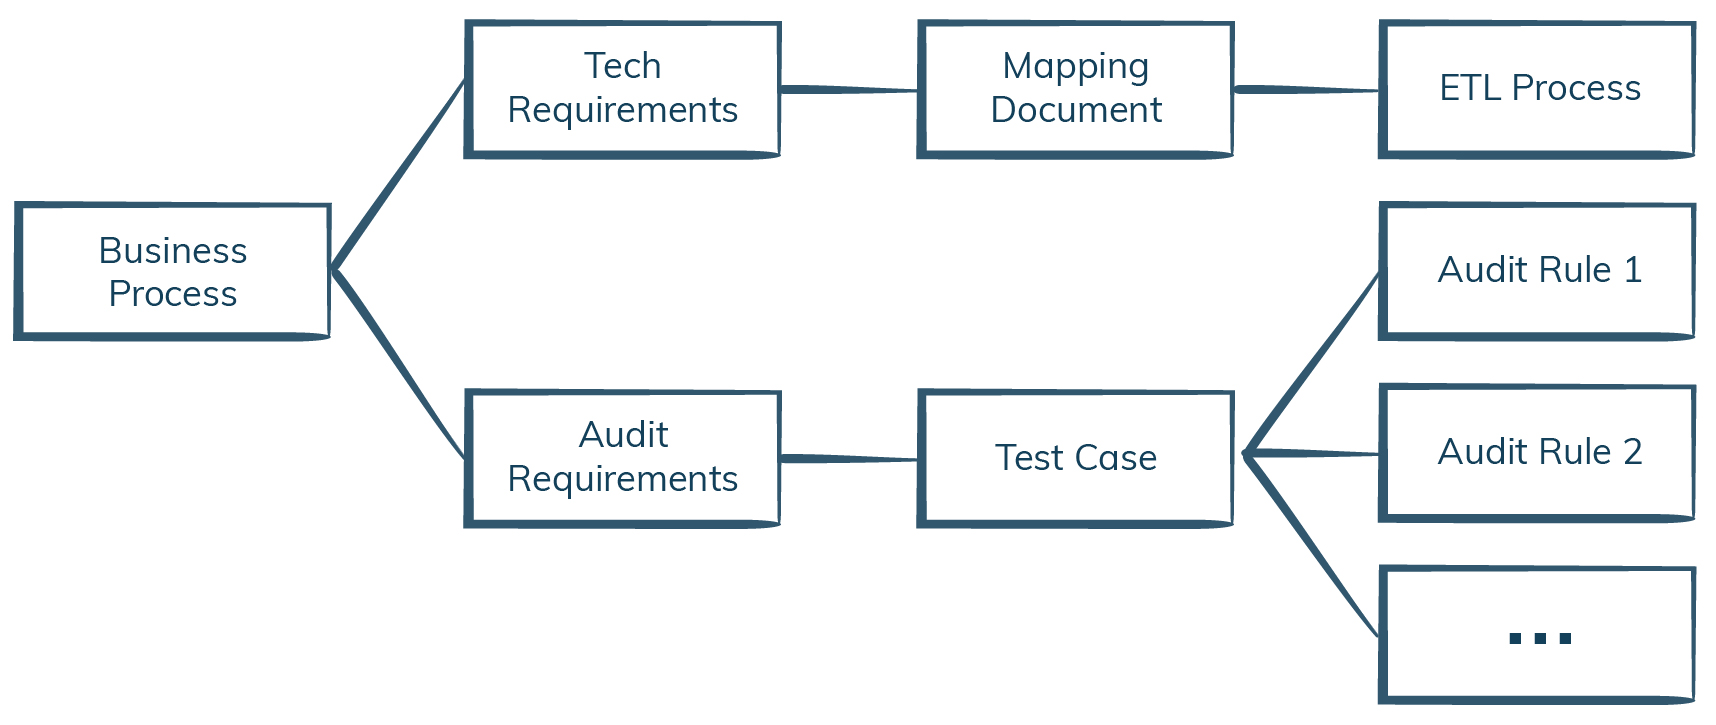 ETL Development vs. ETL Testing Process Image-iCEDQ